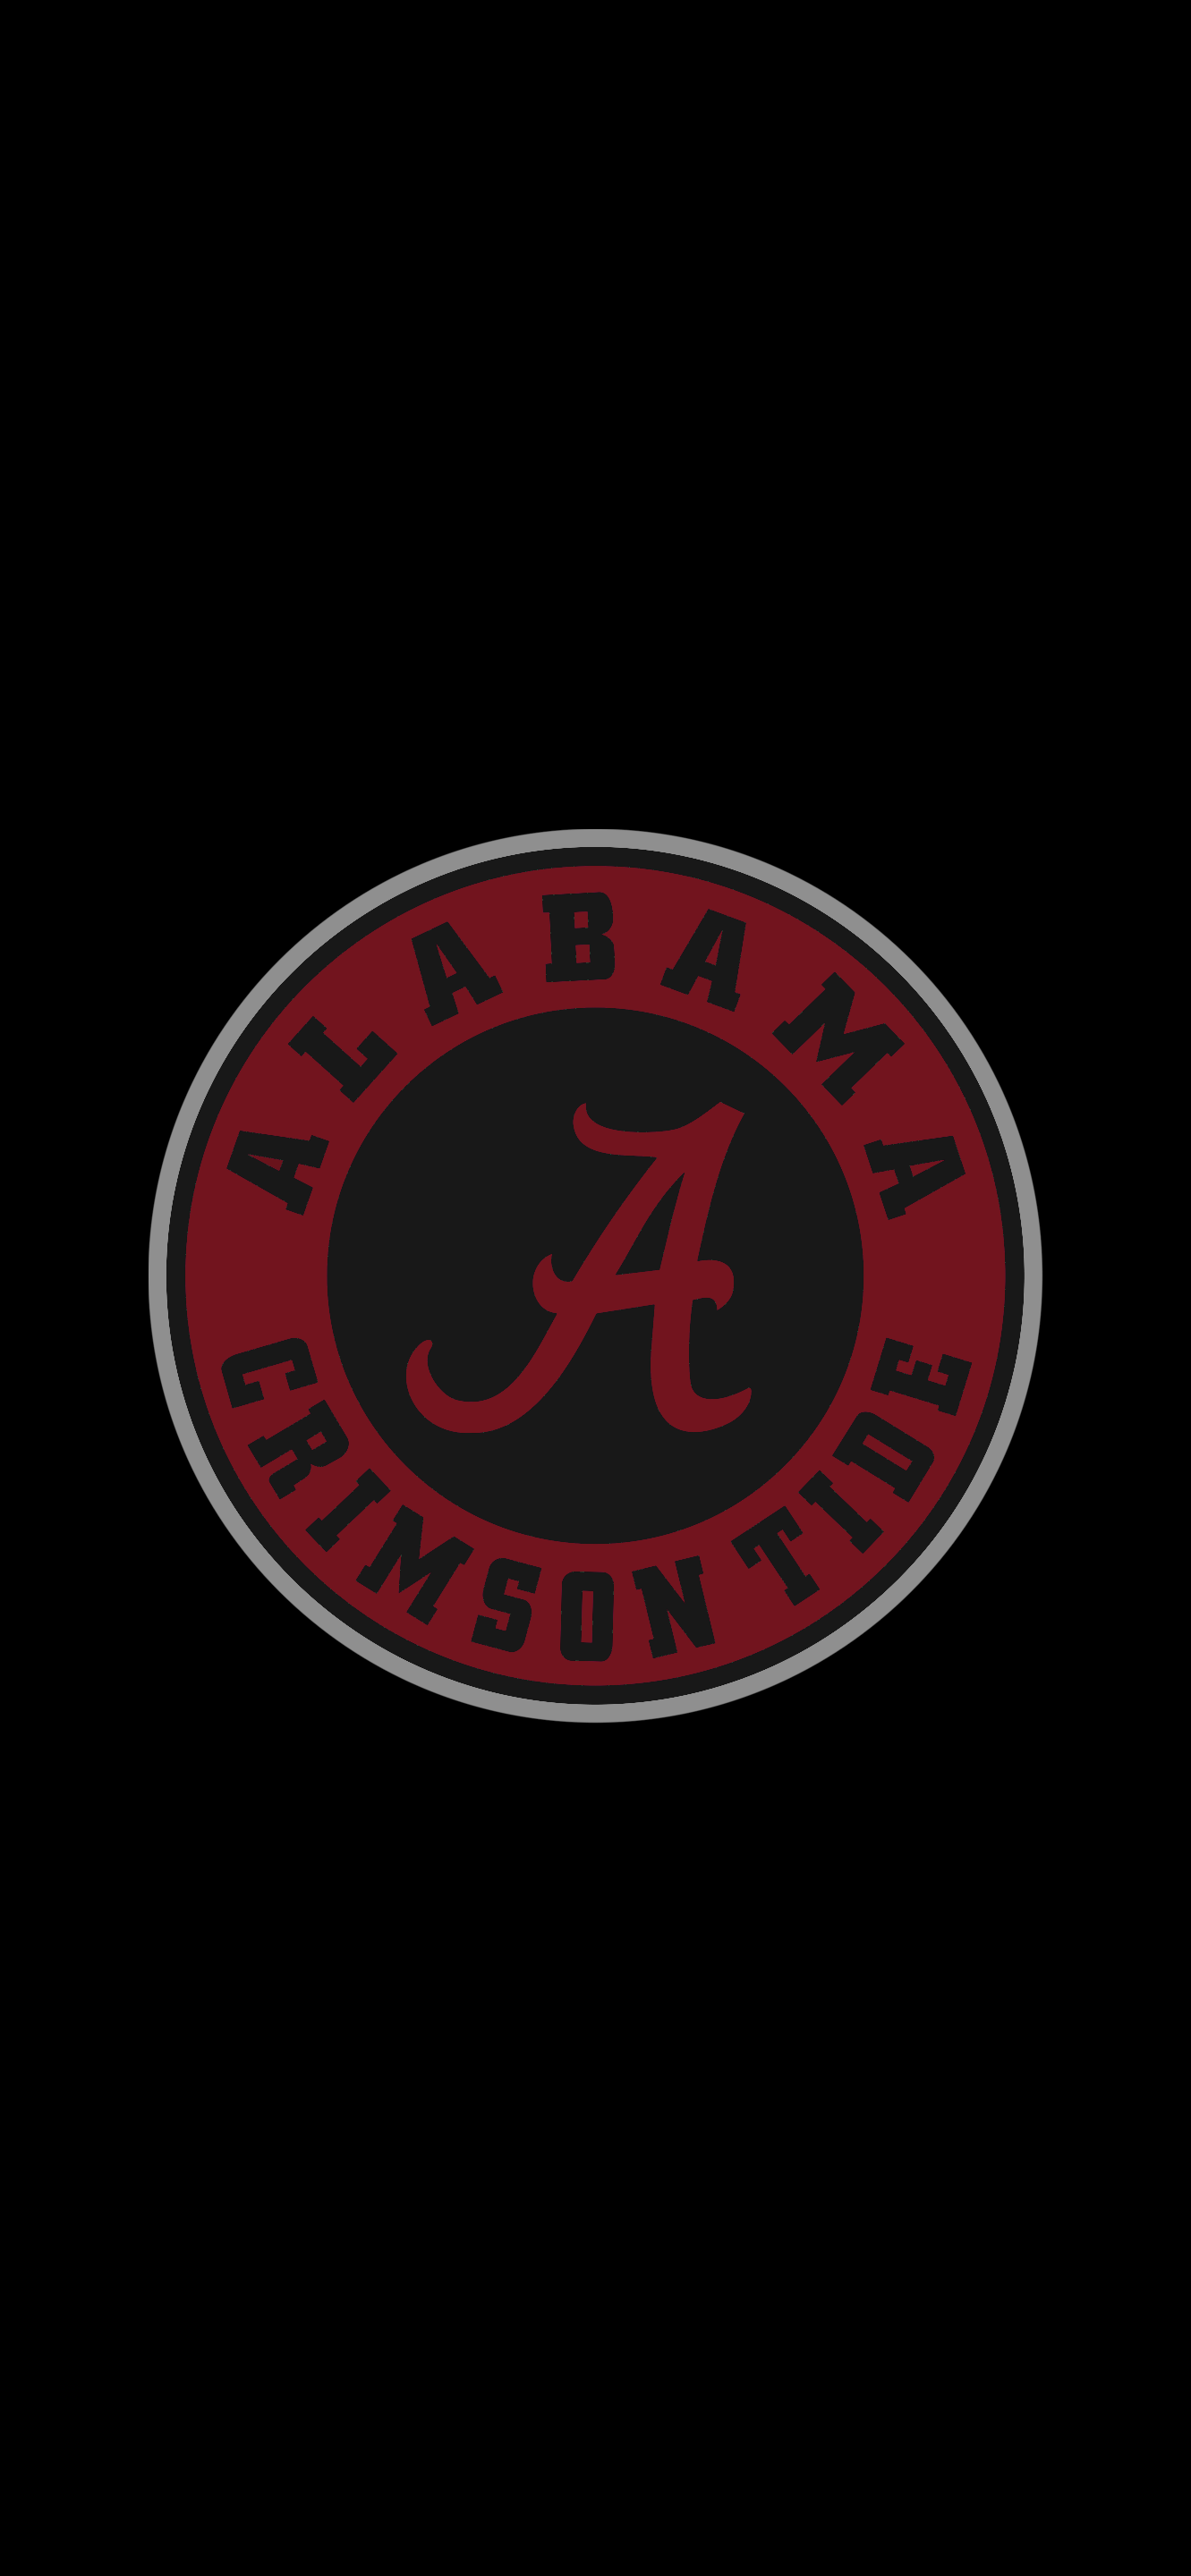 Bama Black Alabama Crimson Tide Logo Alabama Crimson Tide Football Wallpaper Alabama Crimson Tide